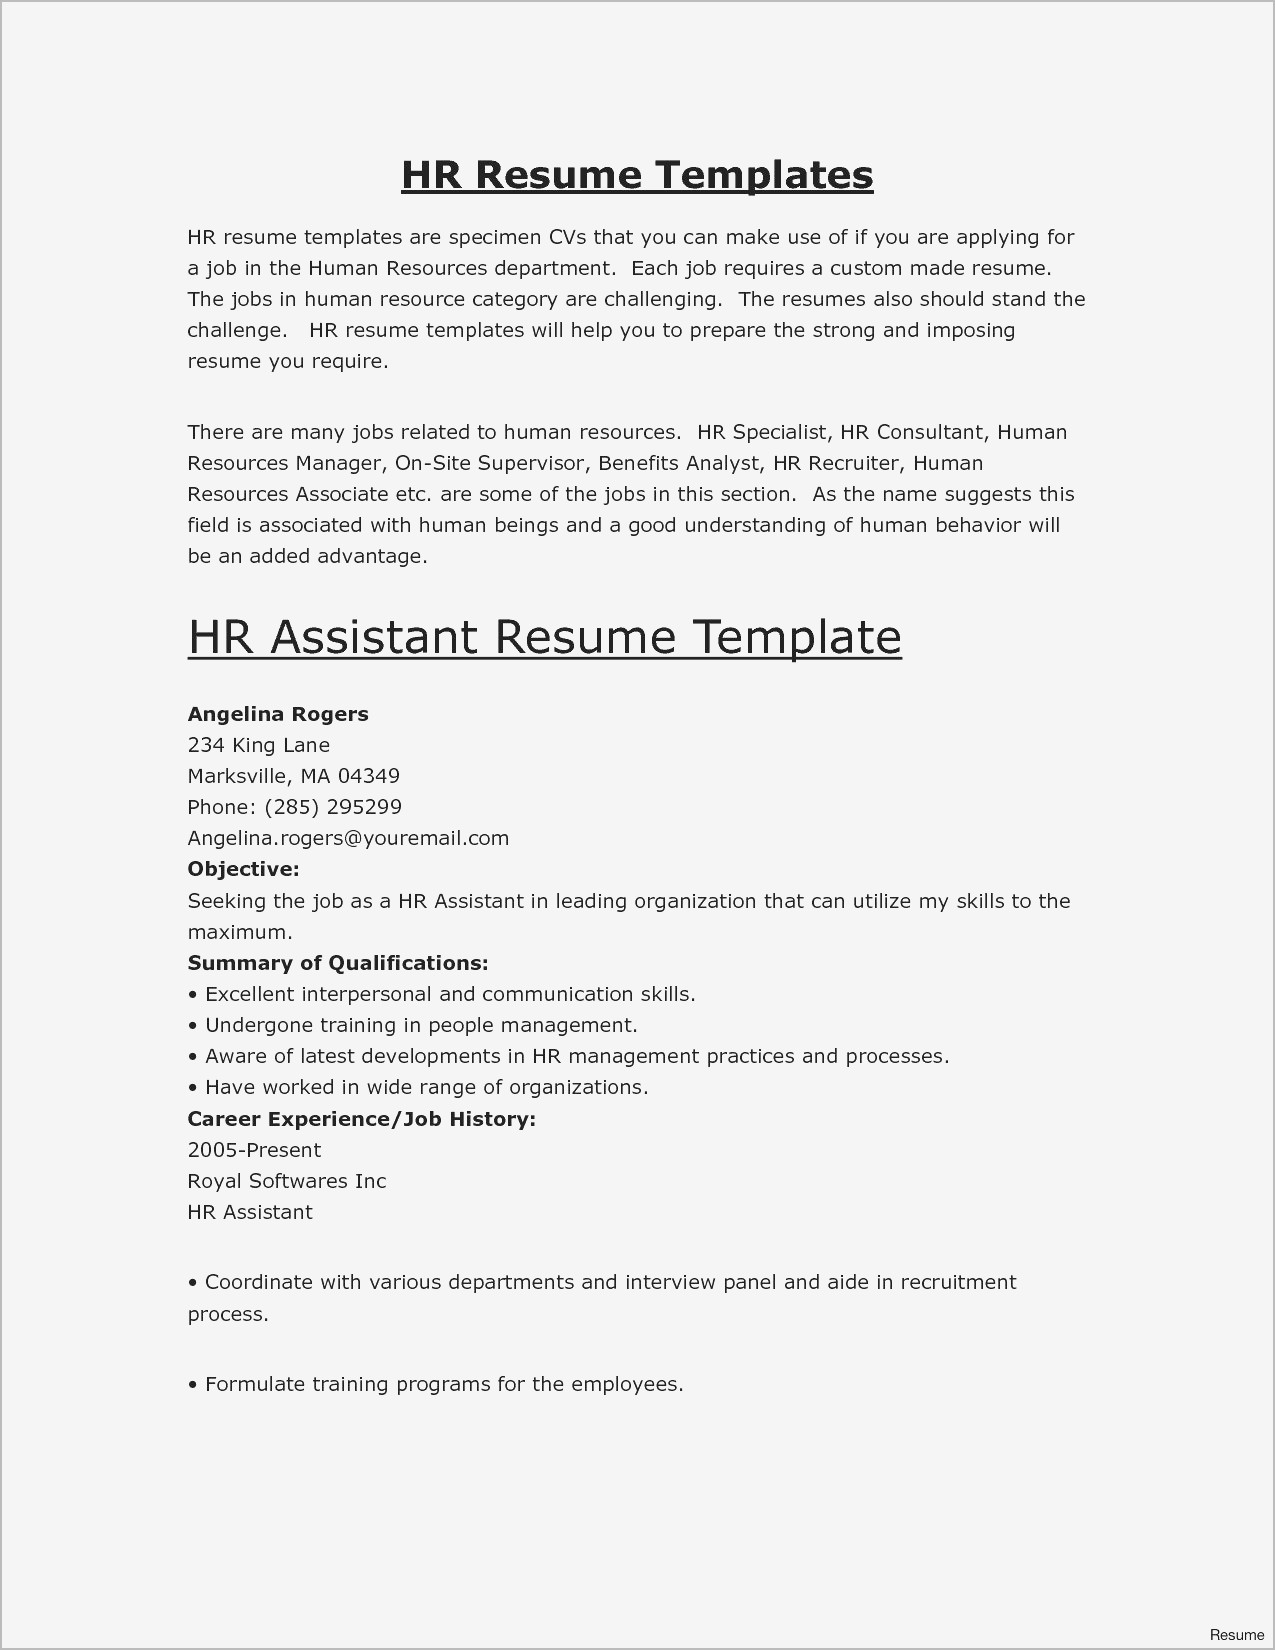 Social Media Resume Template - Marketing Resume Samples Lovely Luxury Grapher Resume Sample